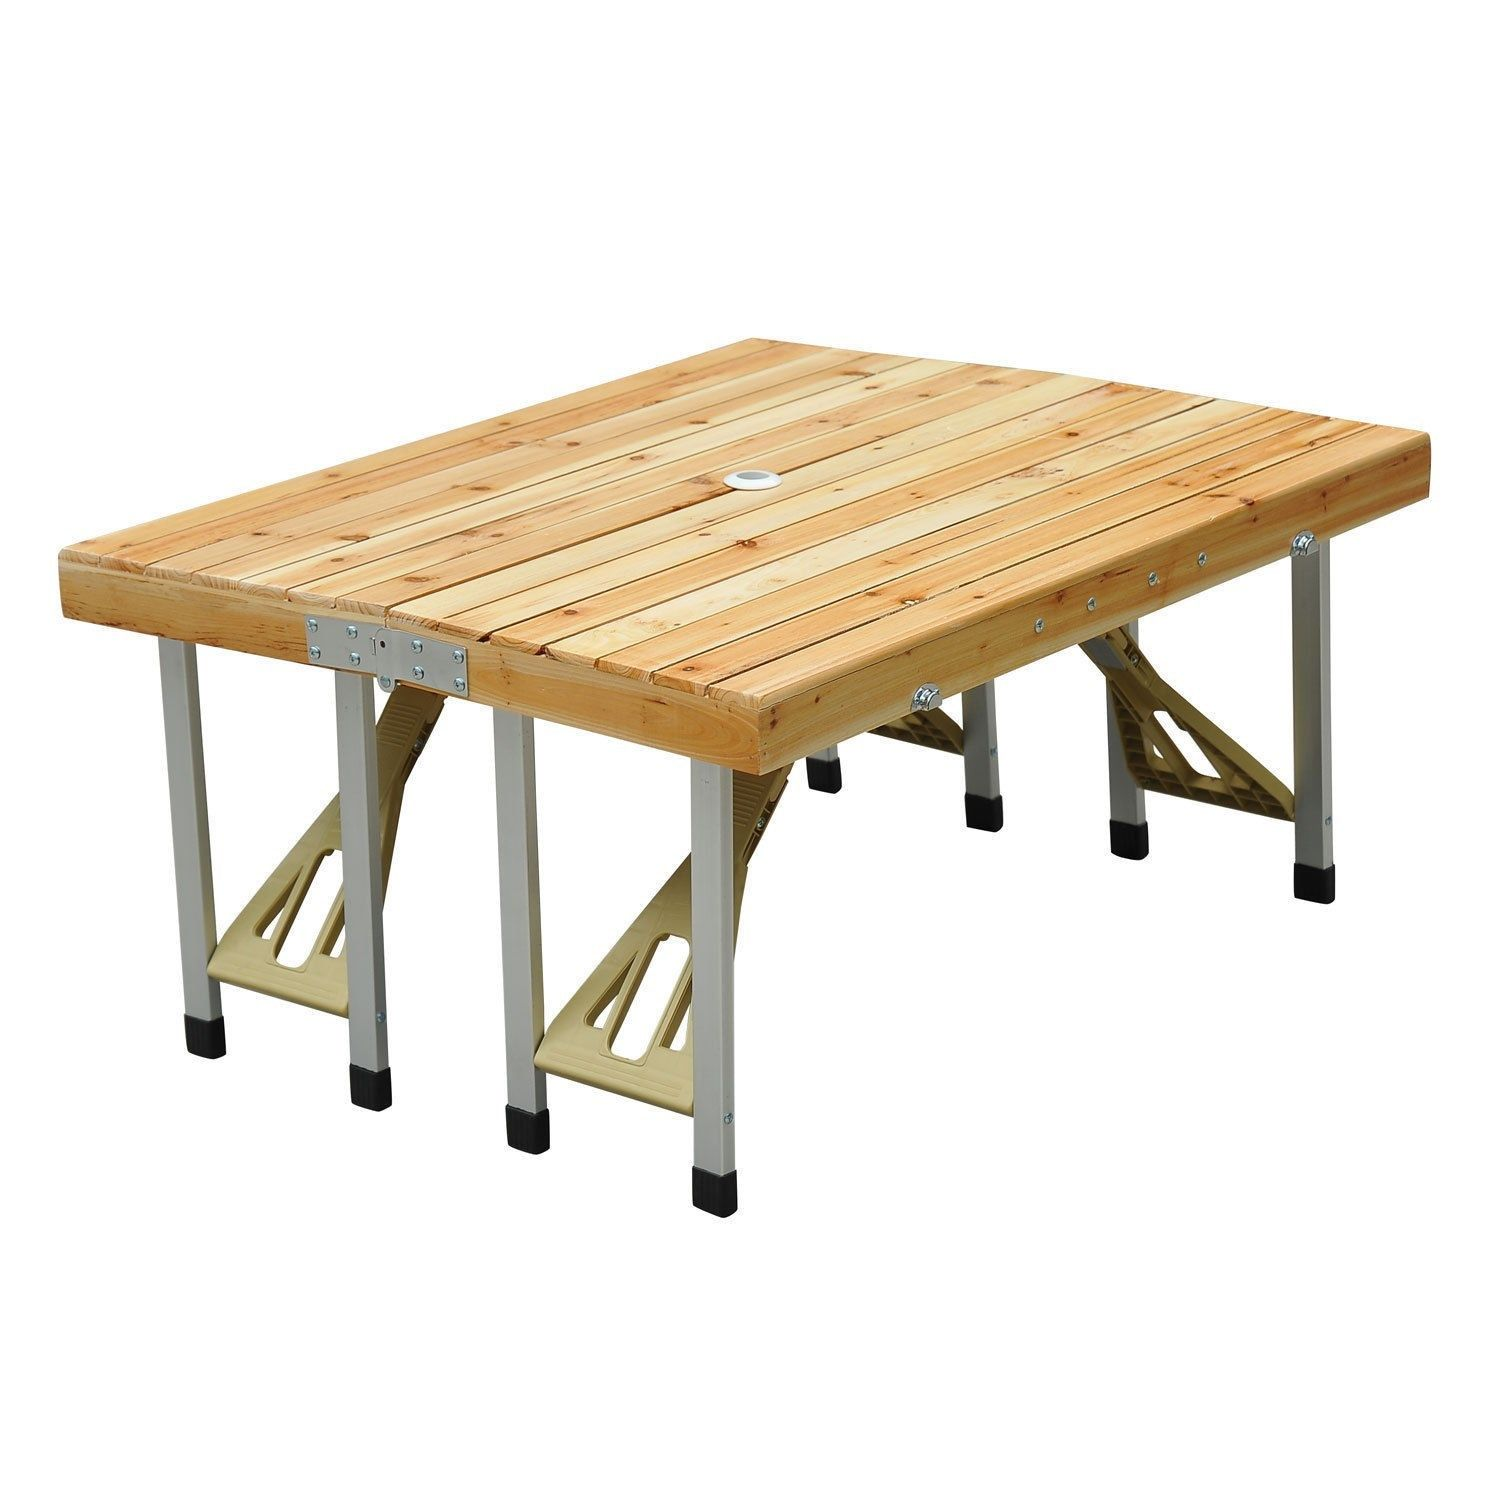 appears guilielmus one three that to a in table picnic gravity legged design defy milk bench